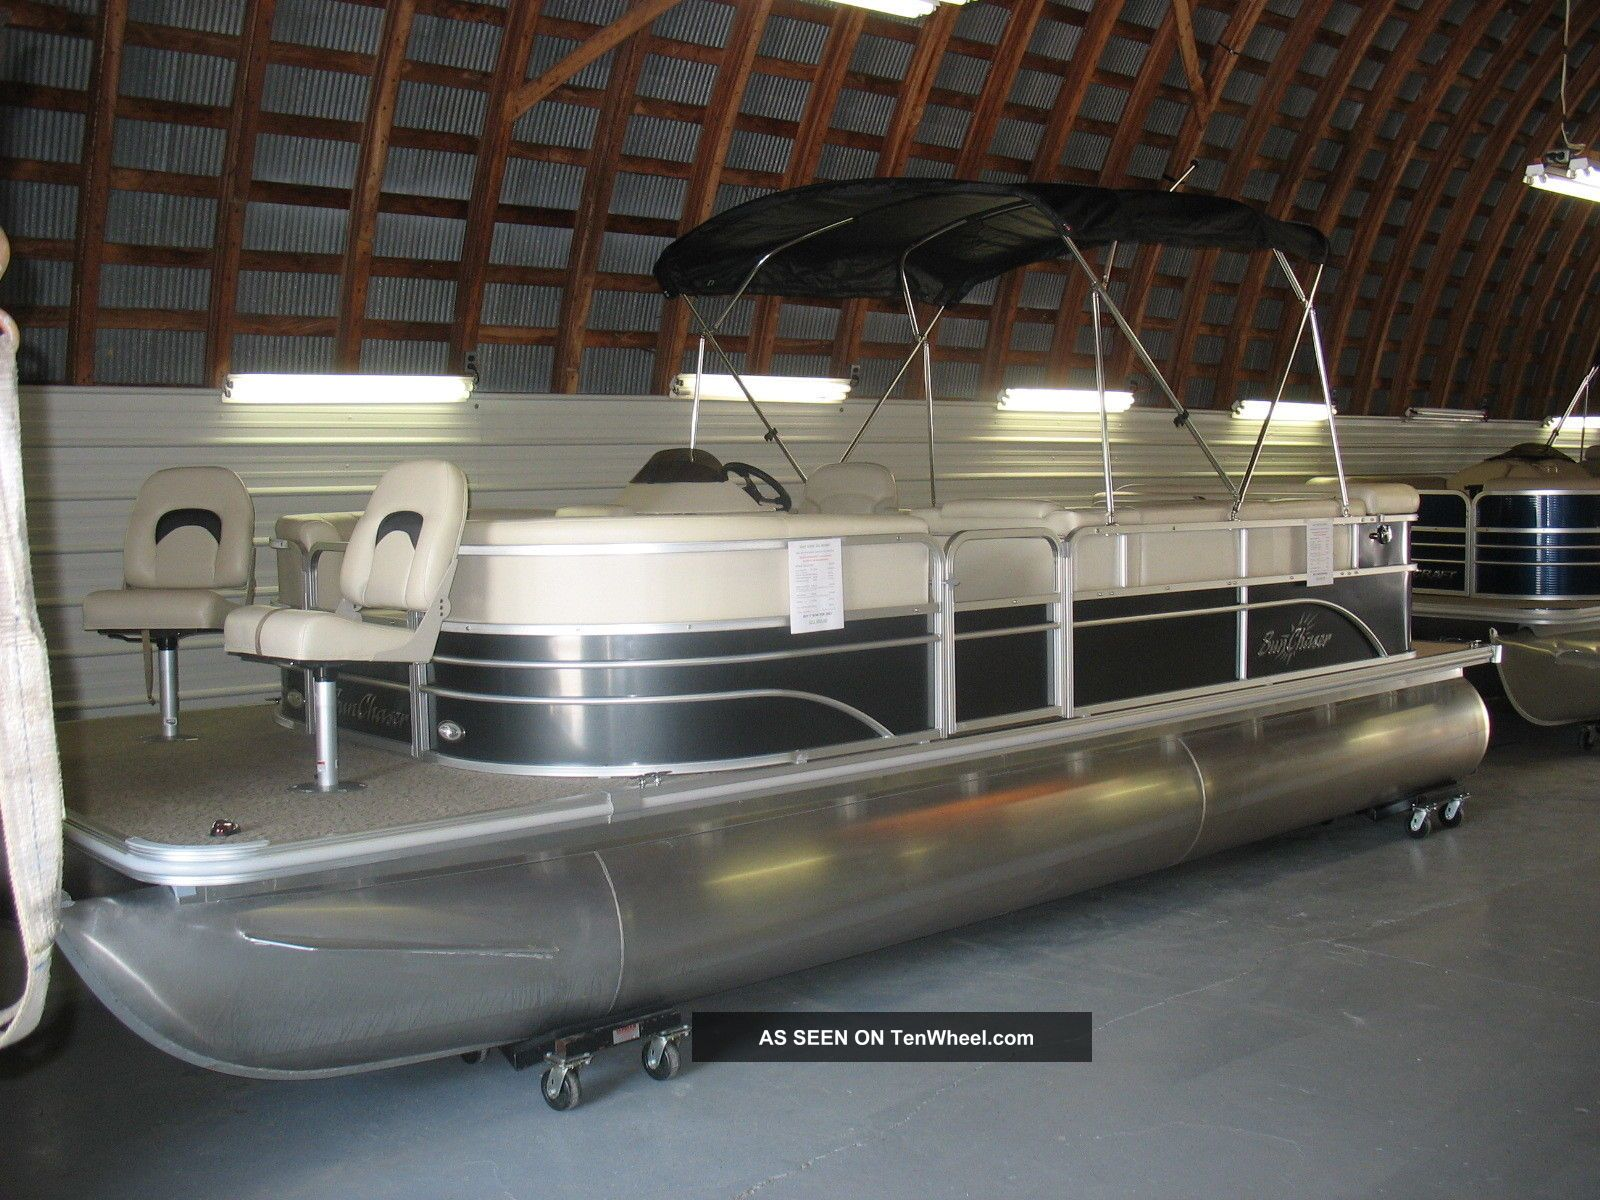 2014 Sun Chaser 8522 Classic Ds Re Runabouts photo